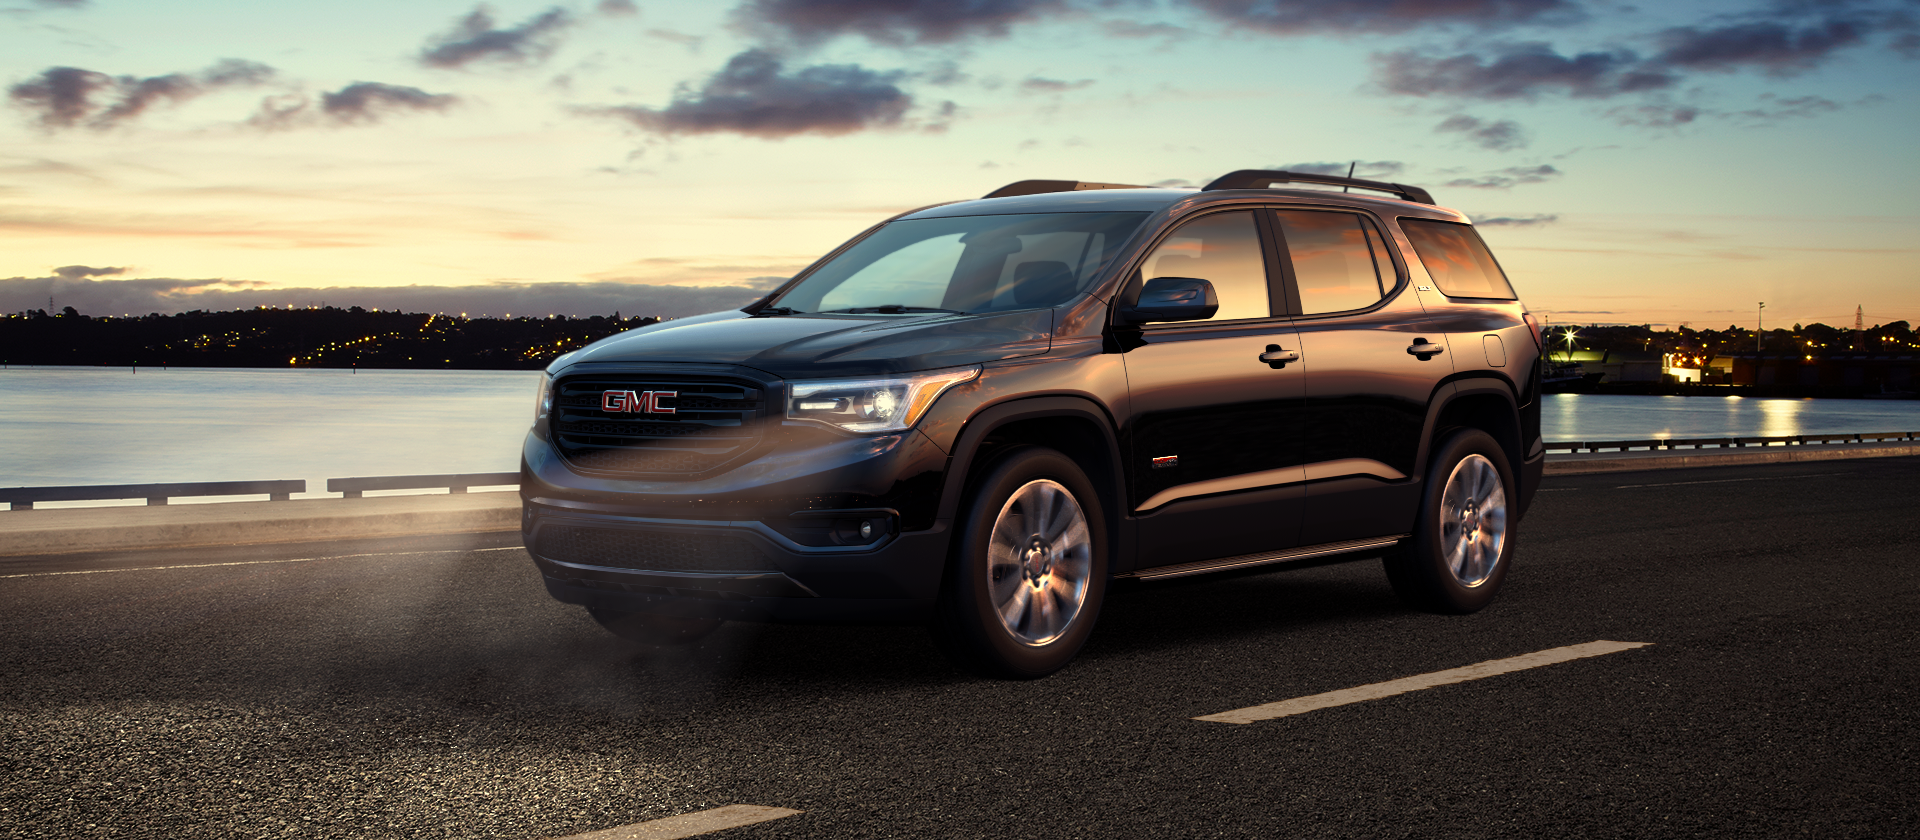 GMC Acadia Lighting by Jason Fernandes